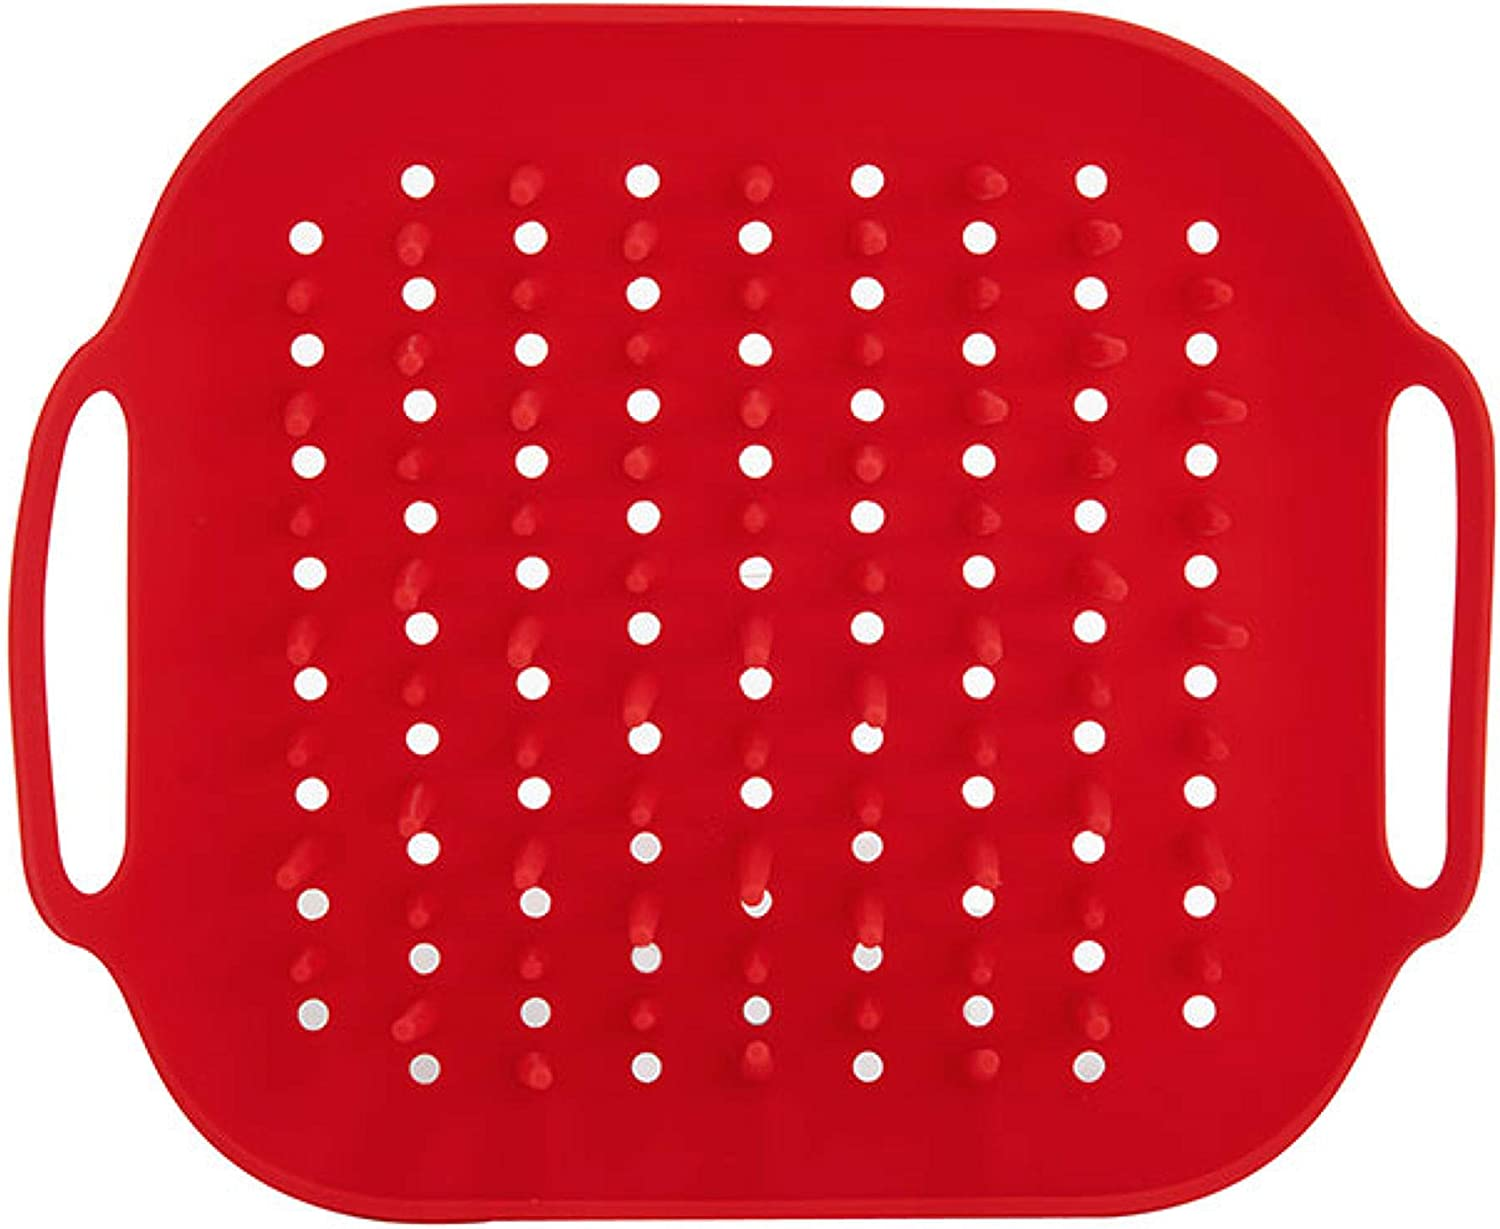 Instant Pot Official Air Fryer Silicone Pronged Tray, One size, Red